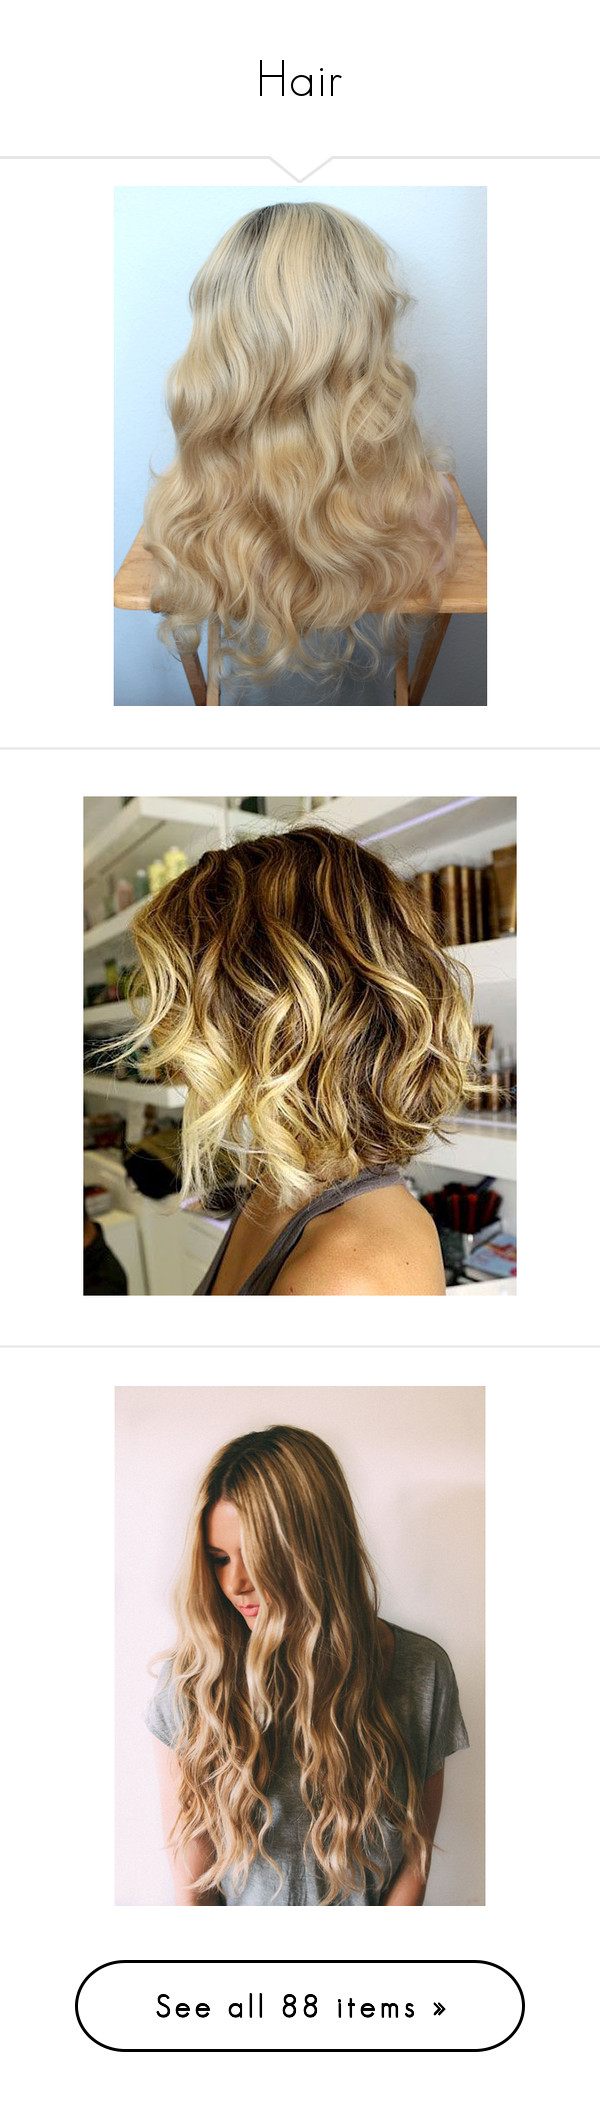 """Hair"" by poprocks18 ❤ liked on Polyvore featuring beauty products, haircare, hair styling tools, wig, curly hair care, hair, hairstyles, beauty, hair styles and cabelos"